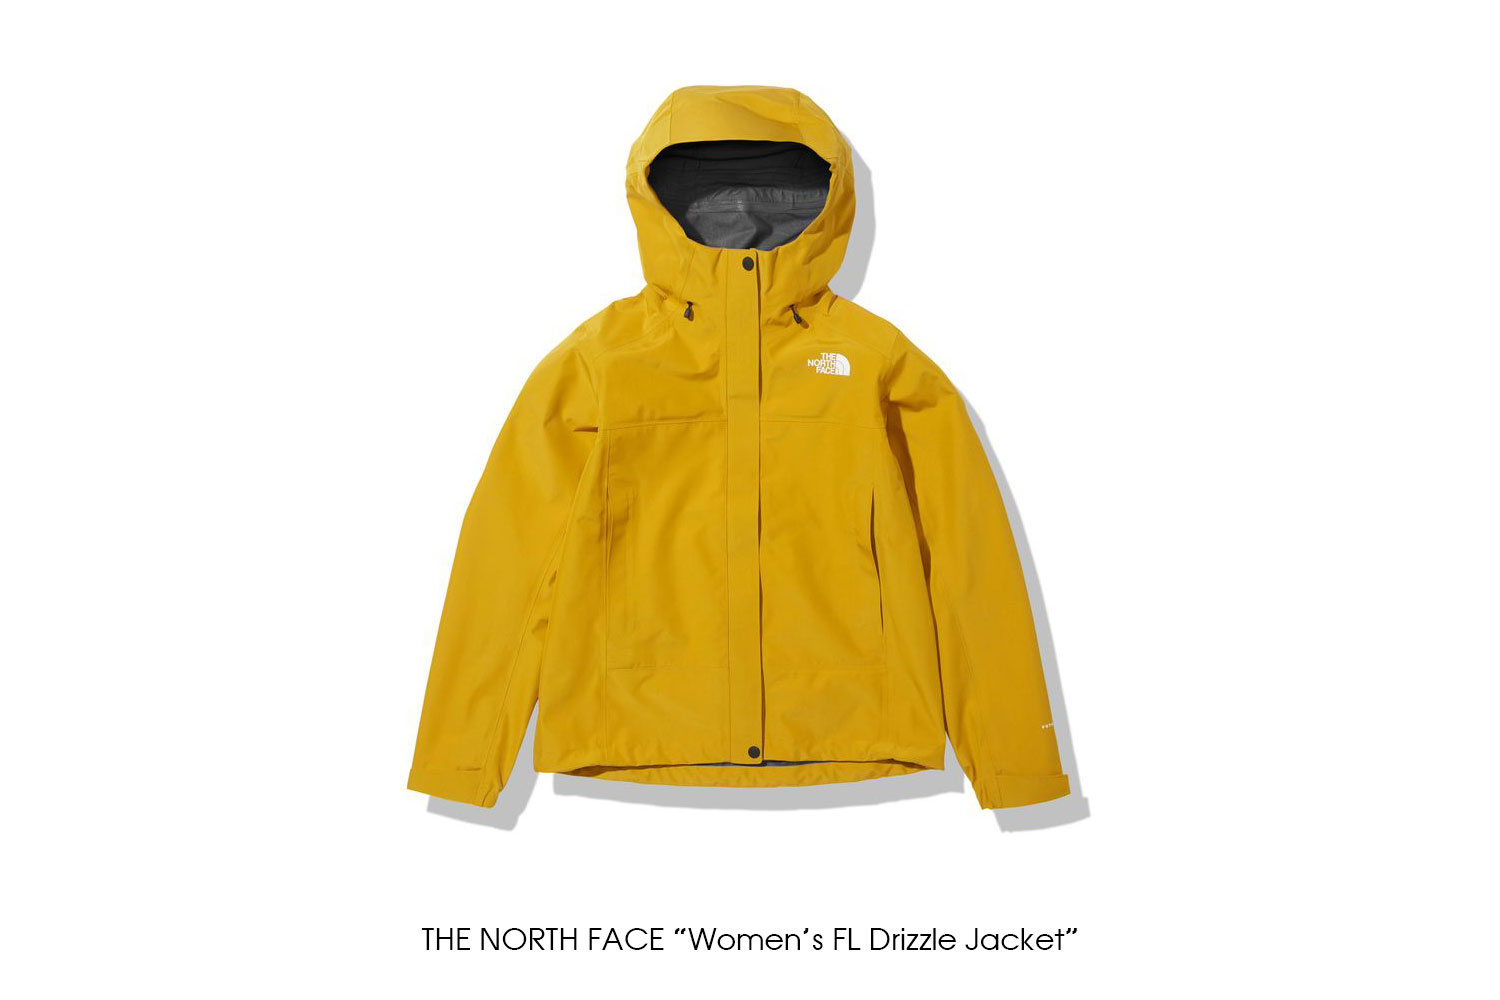 """THE NORTH FACE """"Women's FL Drizzle Jacket"""""""